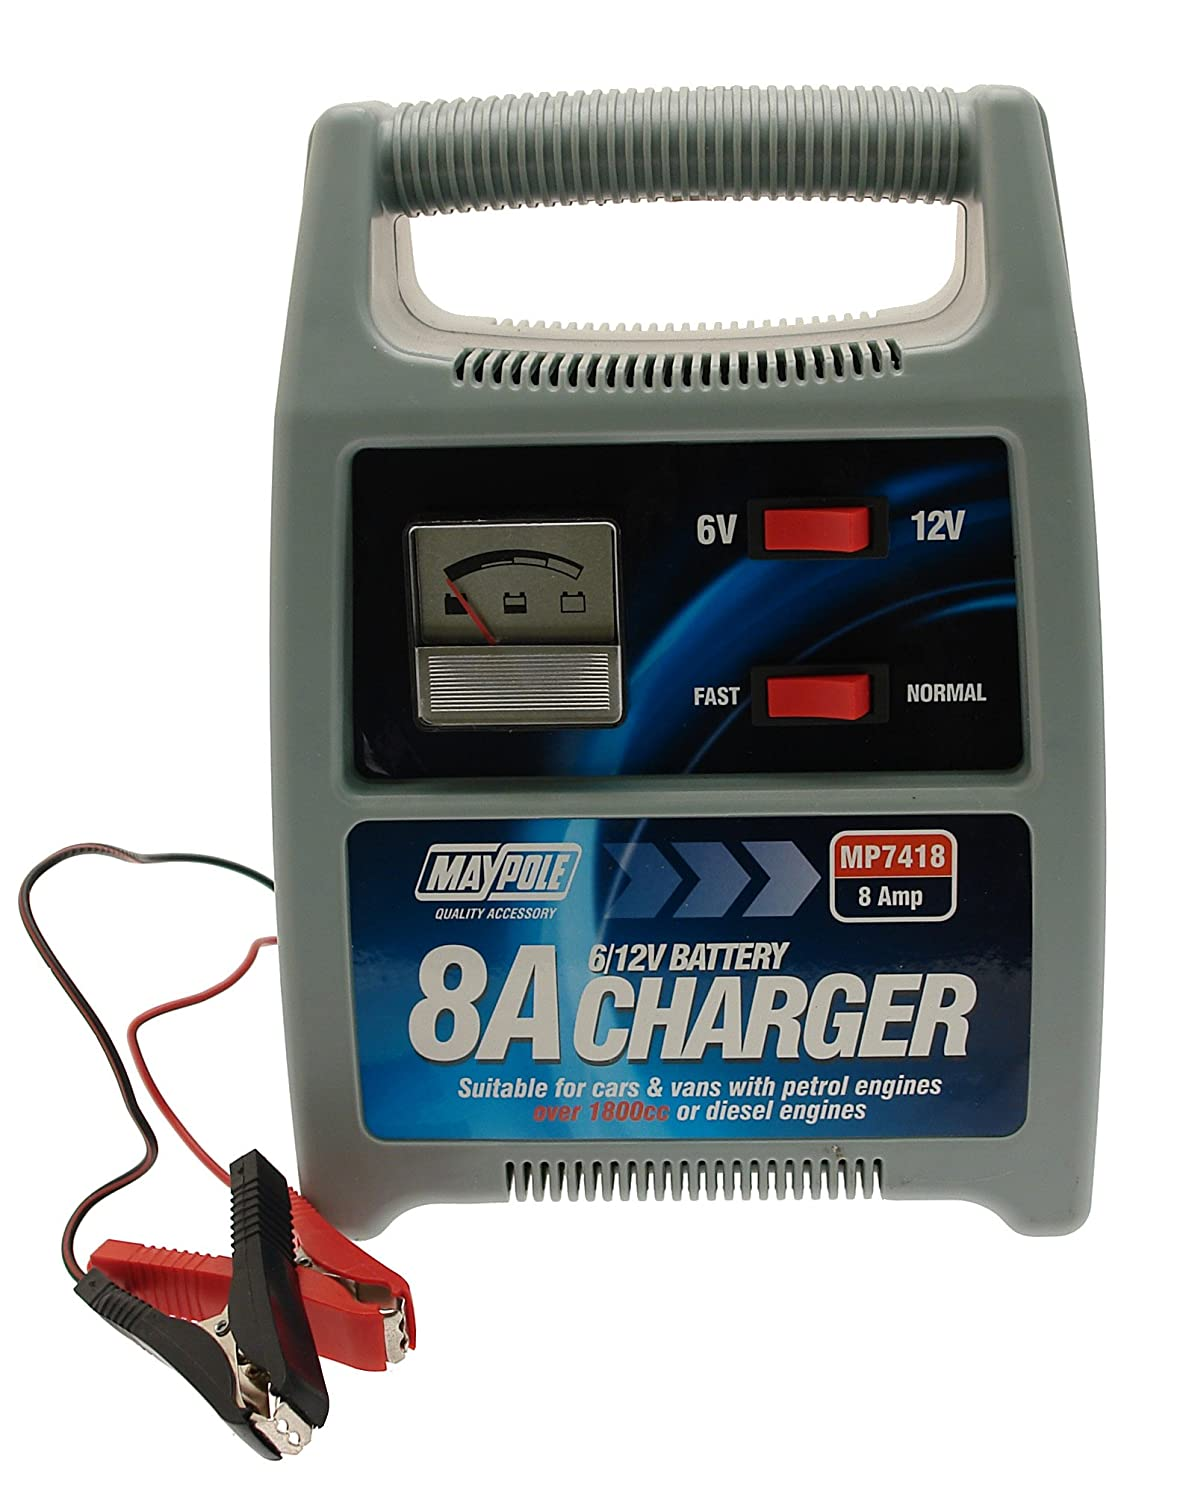 charging car batteries essay That's the car battery's energy density--the amount of energy that can be  they  charge more quickly than the lithium-ion batteries that are.